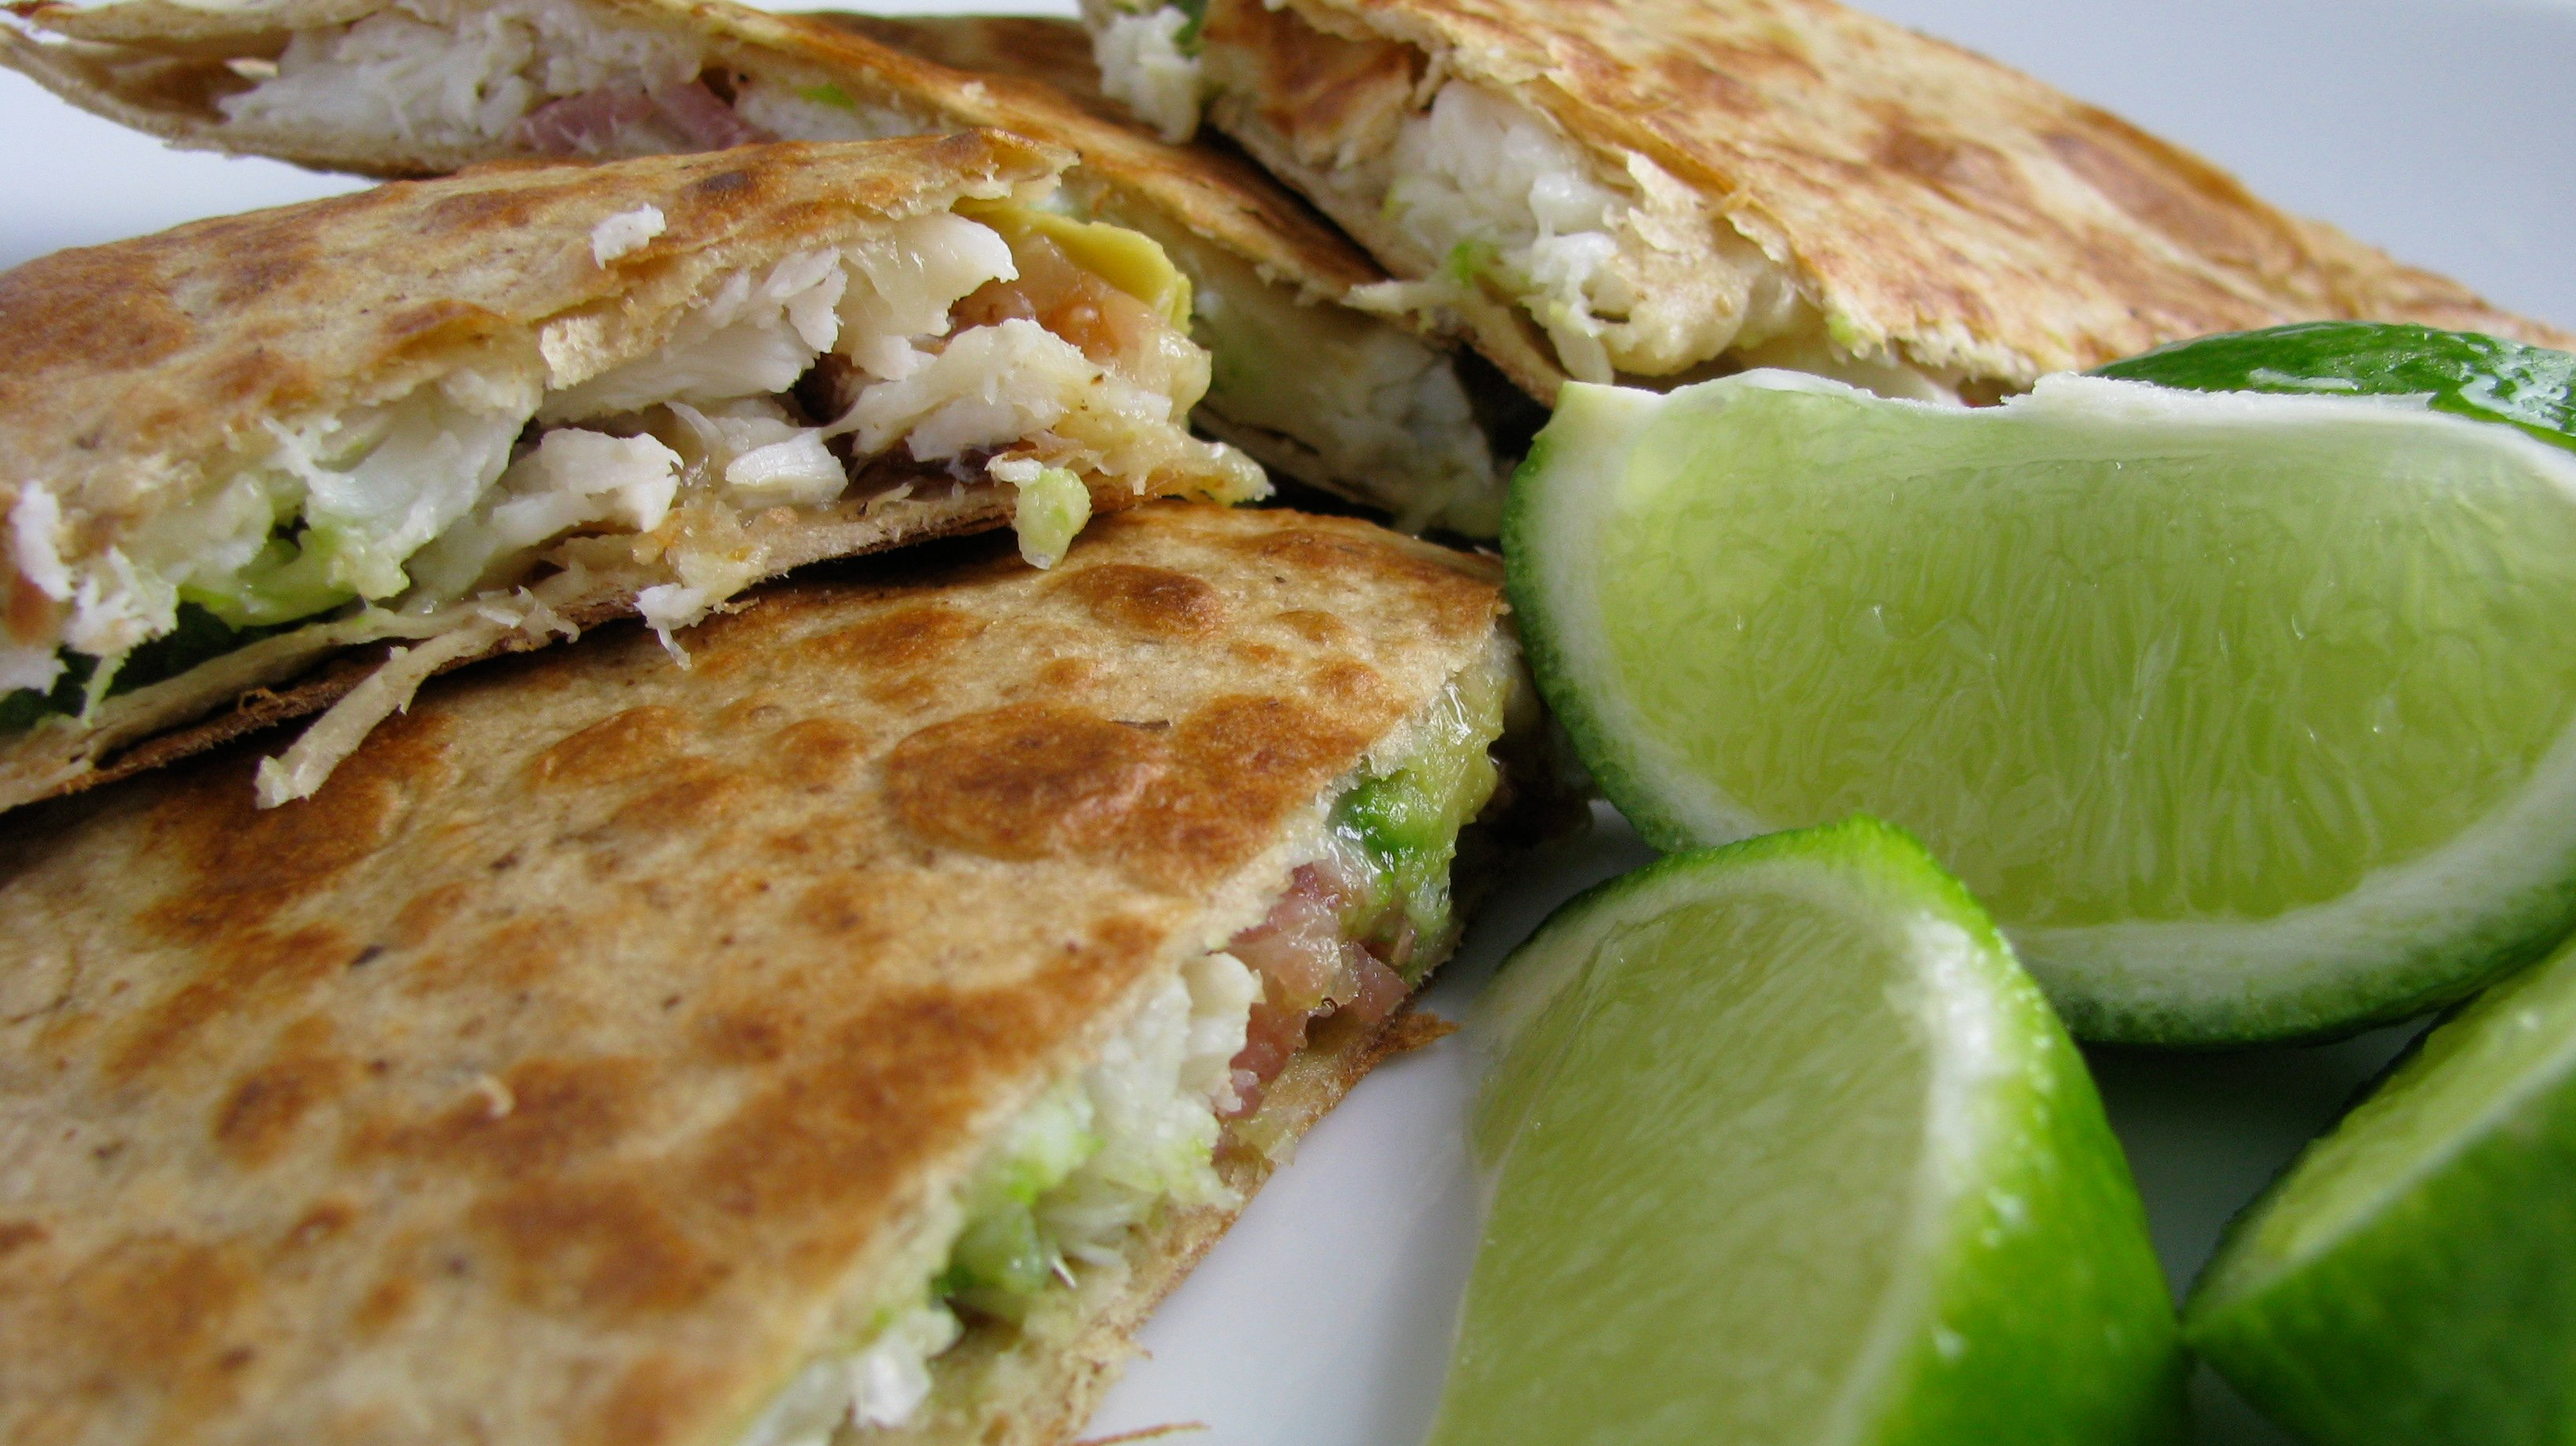 Like everything else, I garnish my quesadillas with limes.